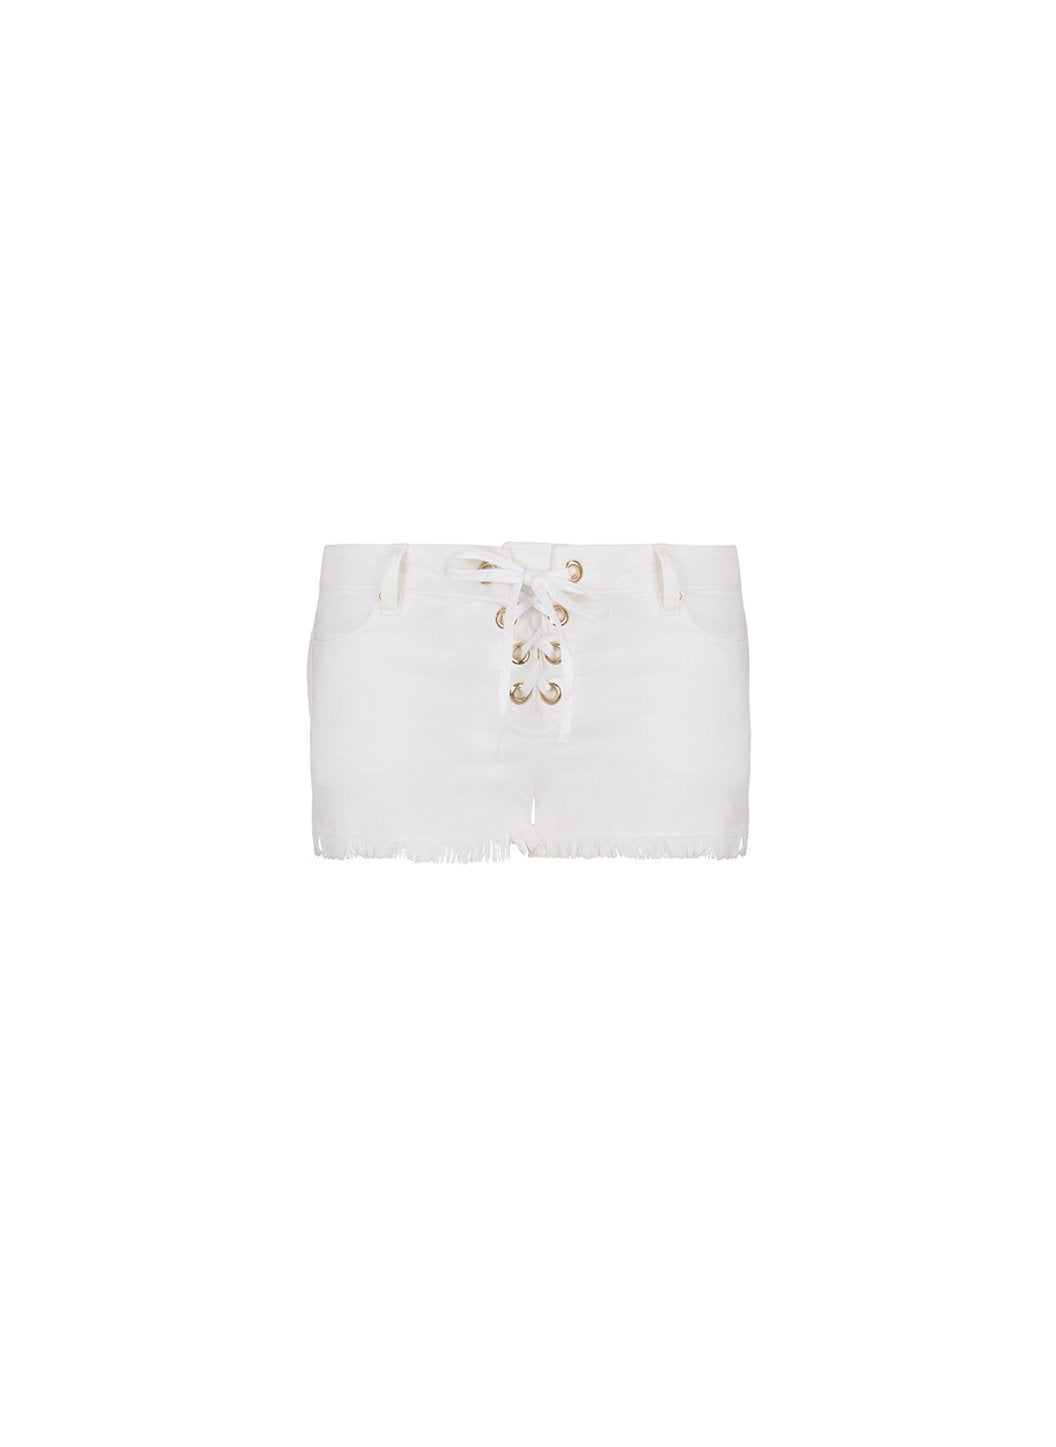 alexi white denim laceup shorts 2019